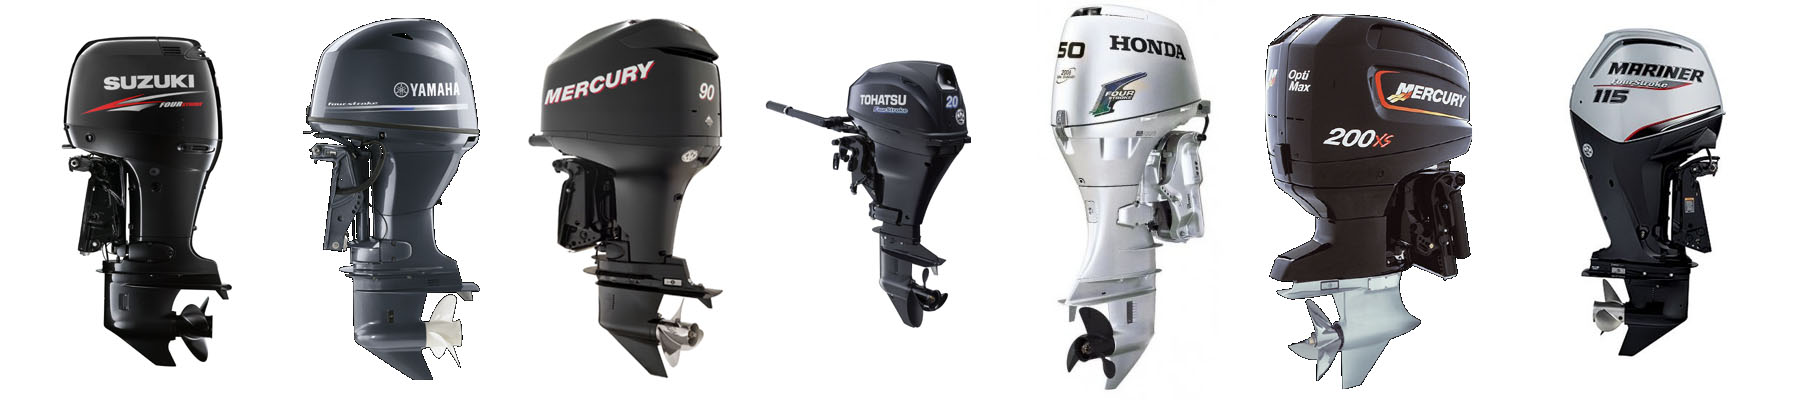 outboard-engines.jpg